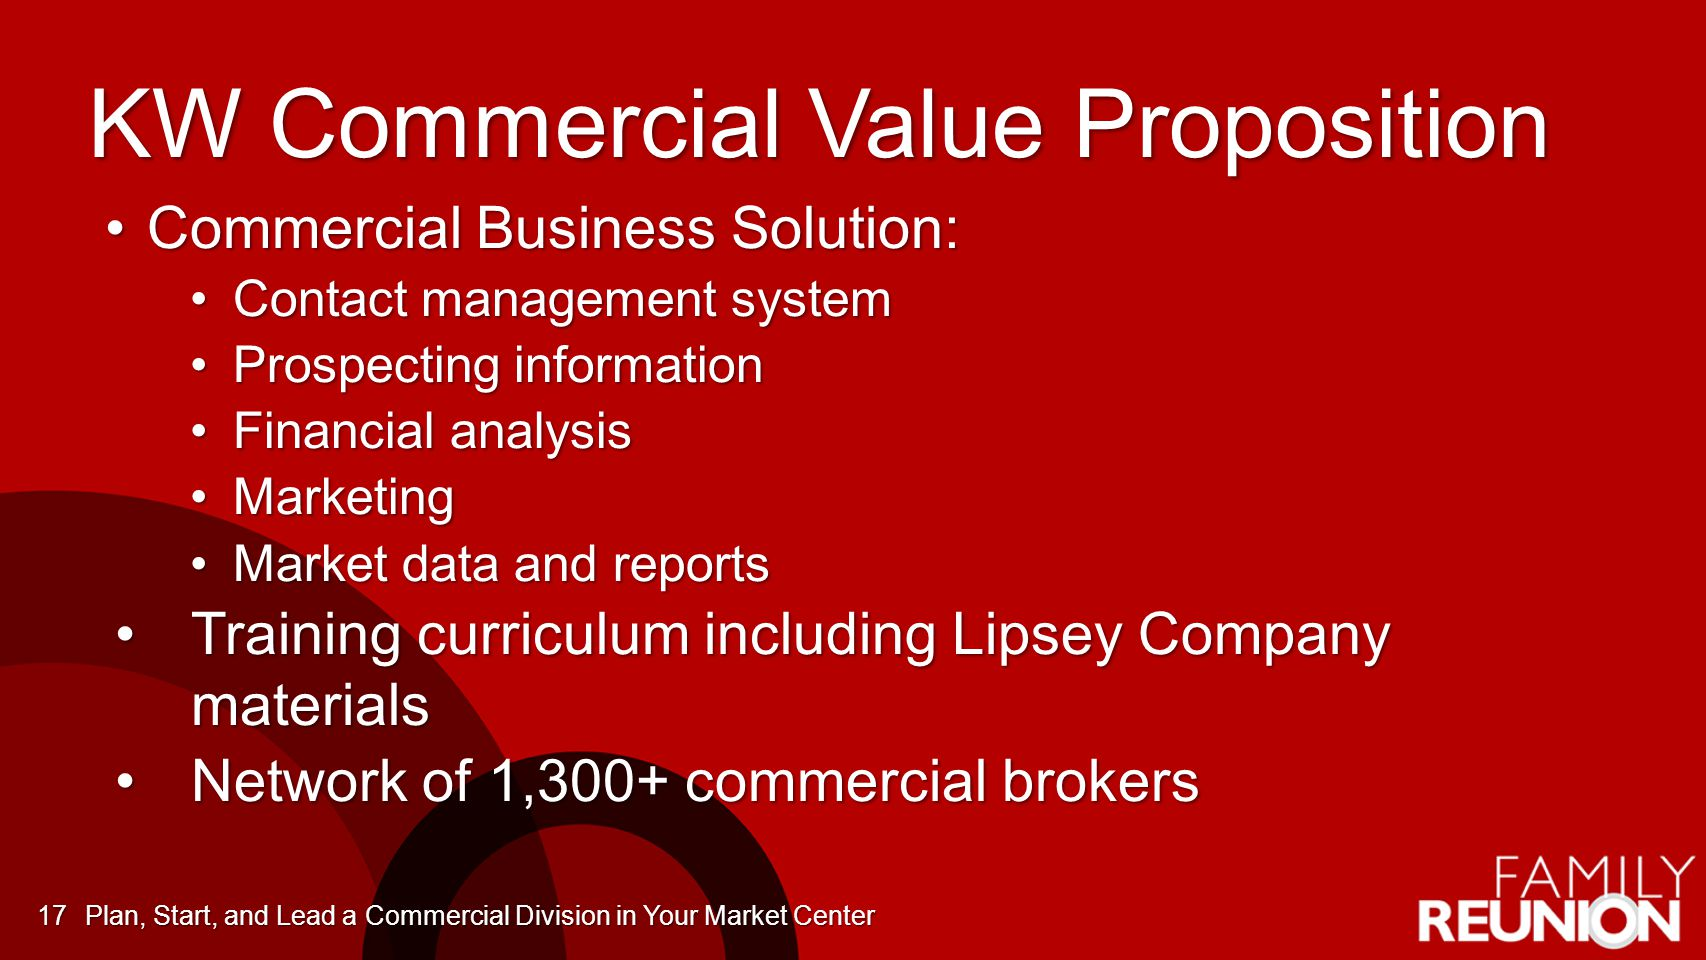 KW Commercial Value Proposition Commercial Business Solution:Commercial Business Solution: Contact management systemContact management system Prospecting informationProspecting information Financial analysisFinancial analysis MarketingMarketing Market data and reportsMarket data and reports Training curriculum including Lipsey Company materialsTraining curriculum including Lipsey Company materials Network of 1,300+ commercial brokersNetwork of 1,300+ commercial brokers Plan, Start, and Lead a Commercial Division in Your Market Center17